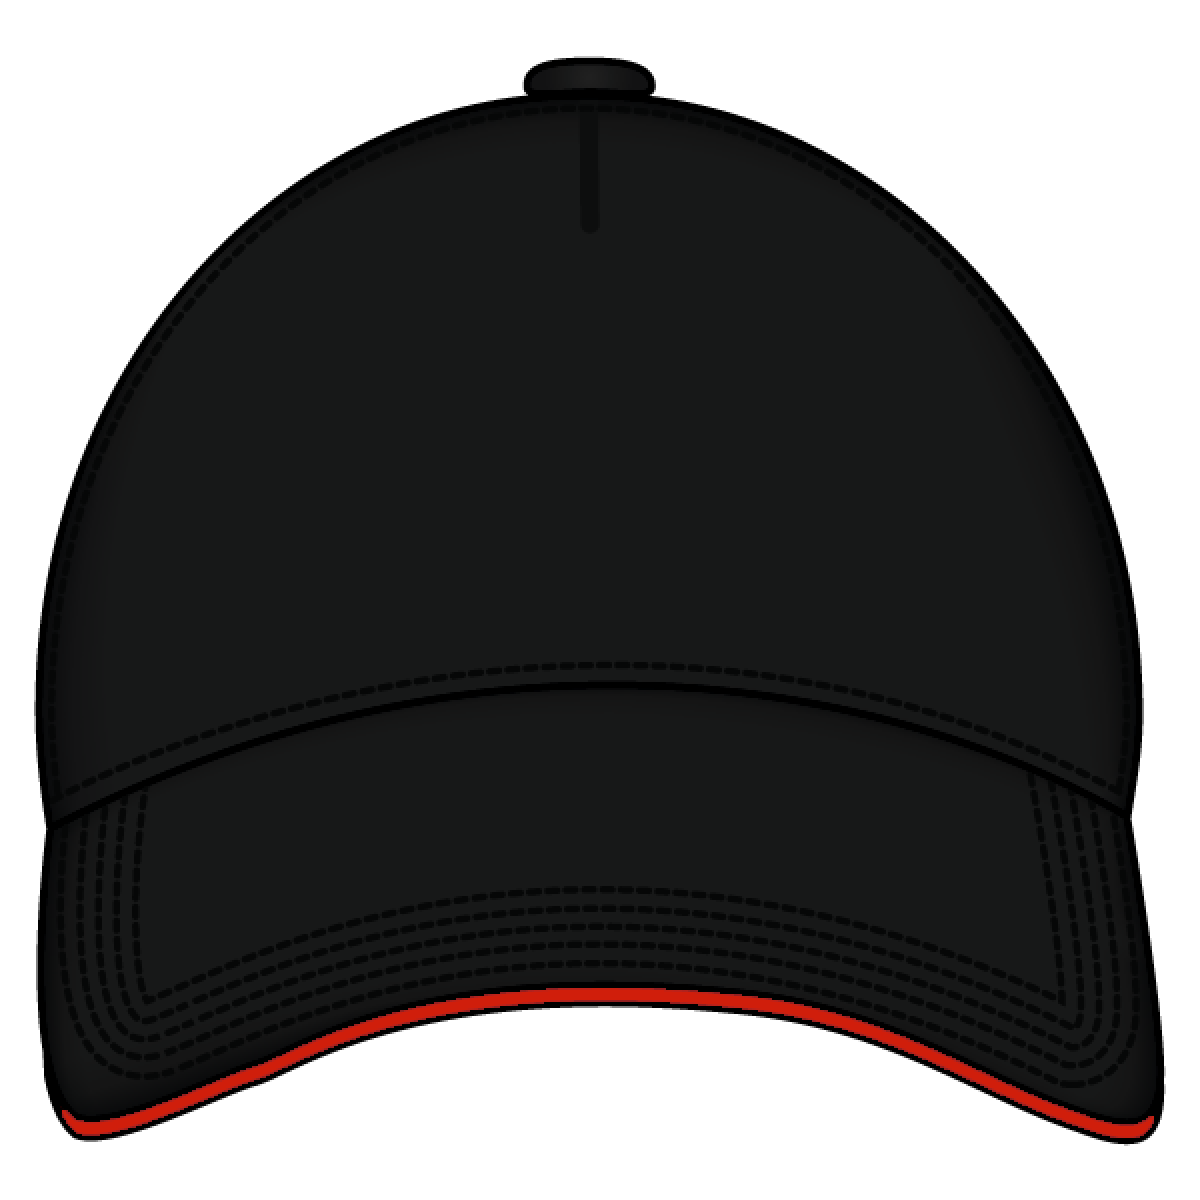 Baseball hat front facing clipart clipart royalty free stock 28+ Collection of Baseball Cap Clipart Front   High quality, free ... clipart royalty free stock